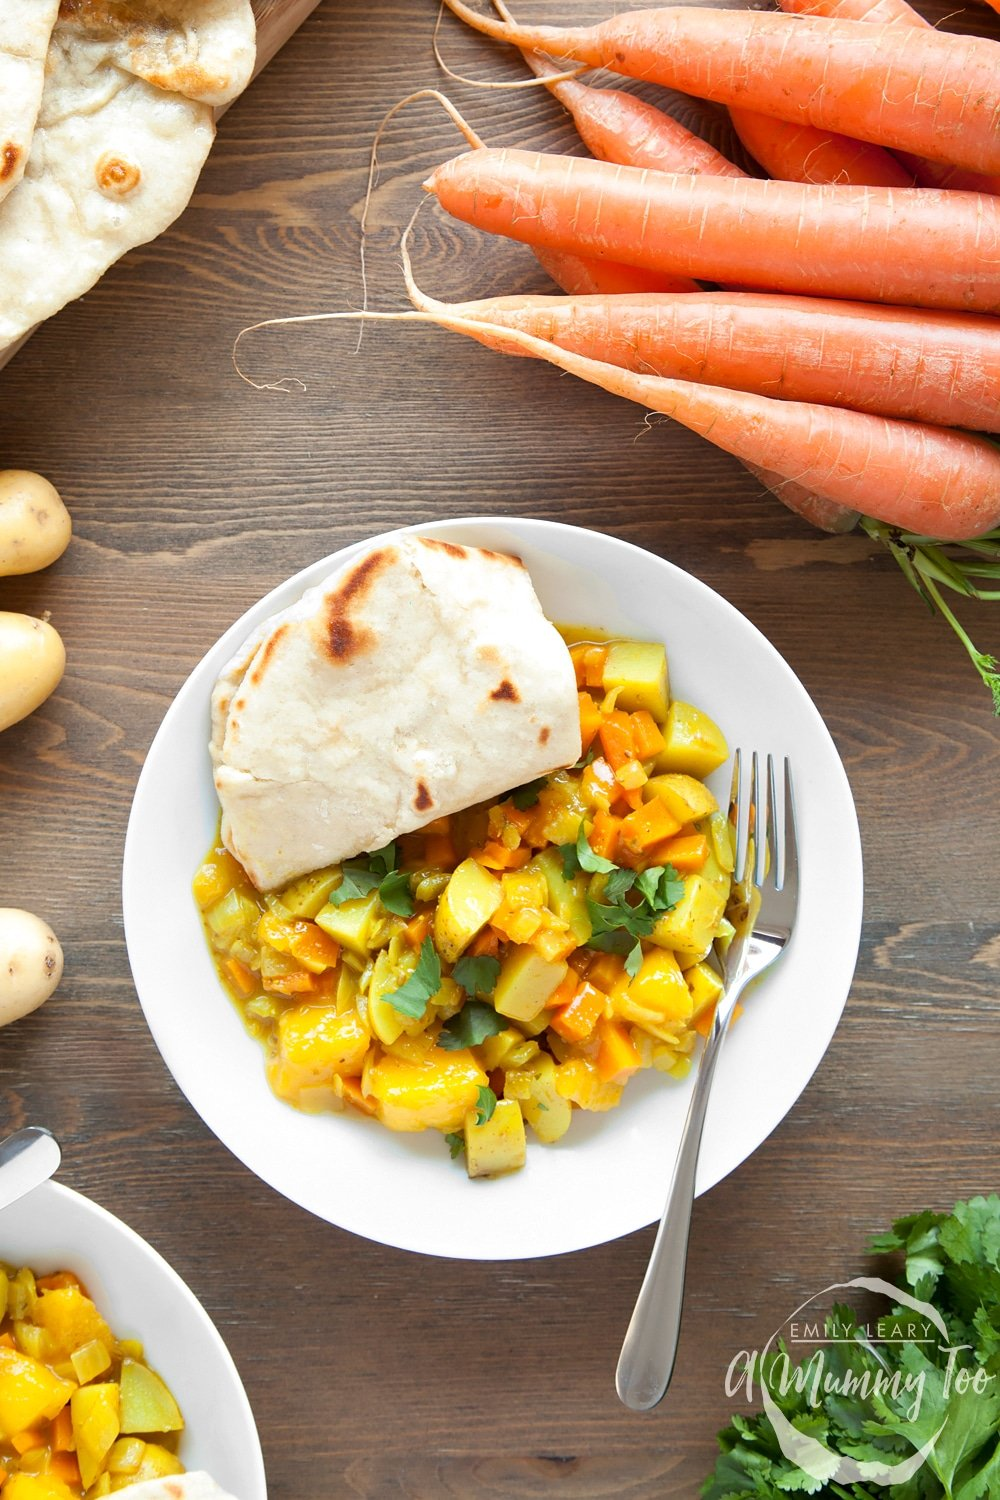 Serve this tasty home-grown carrot and mango curry with home-made spices with naan bread and enjoy!